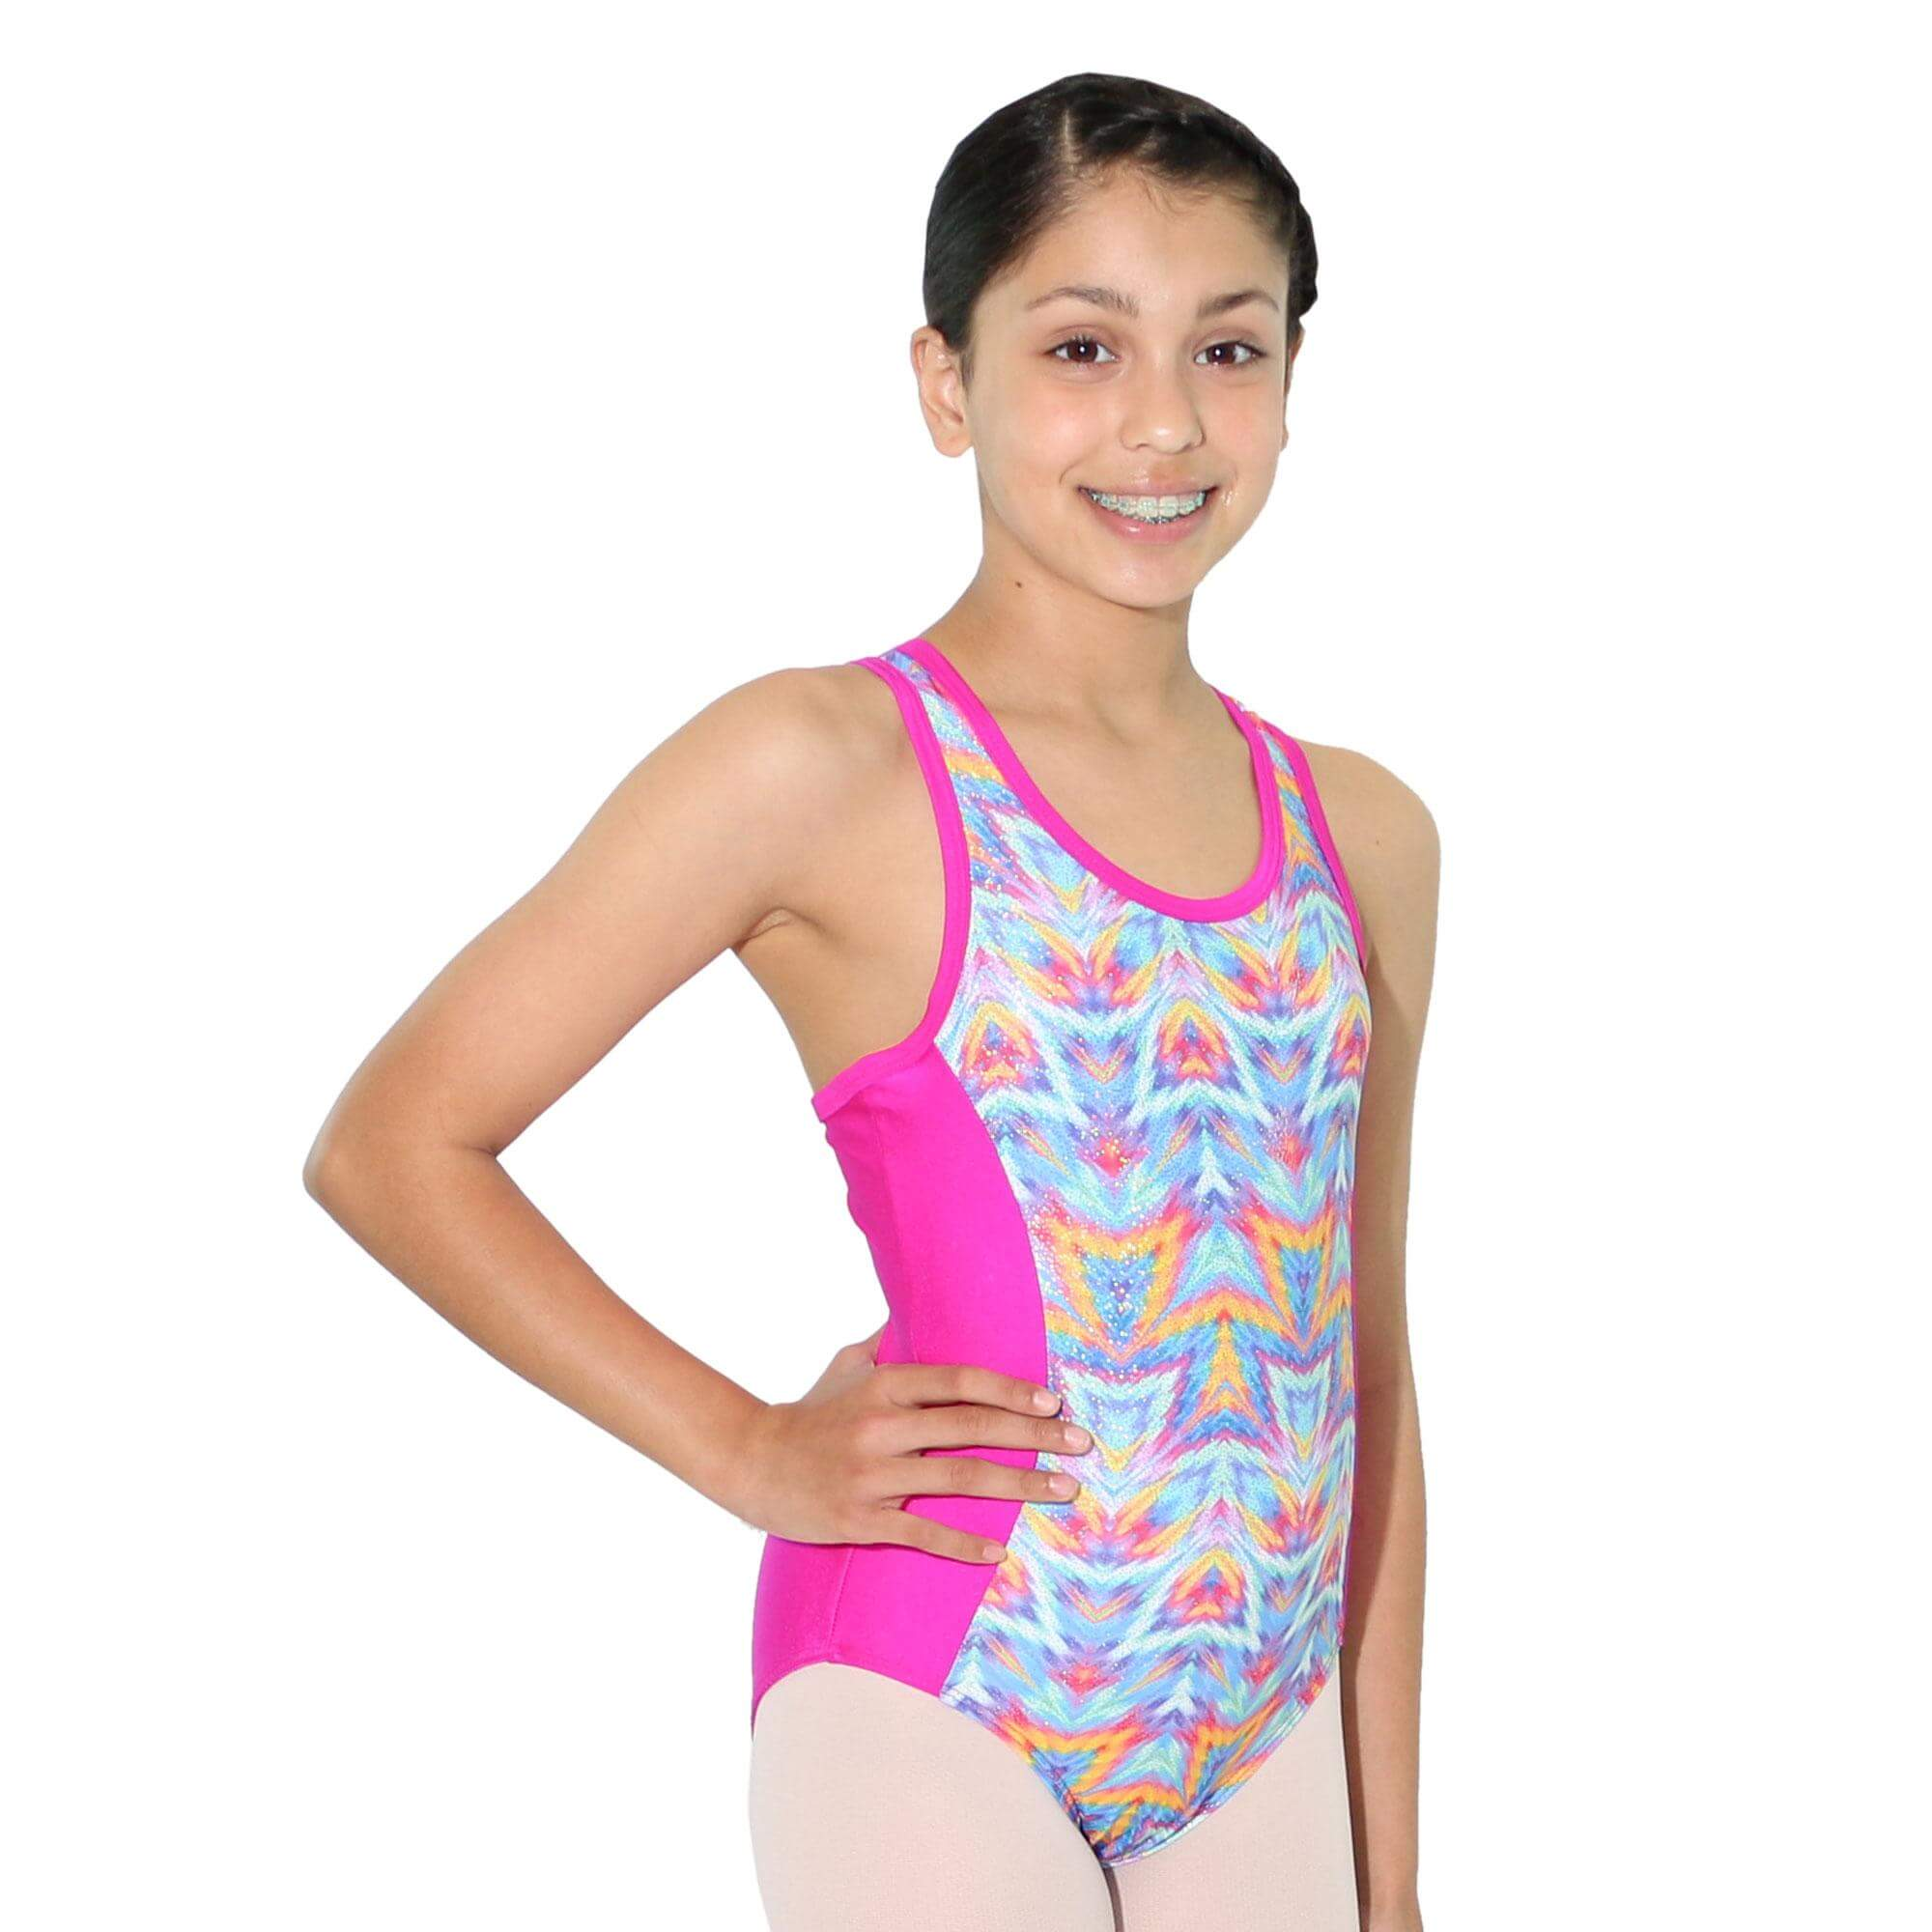 Reflectionz Multi Chevron Leotard